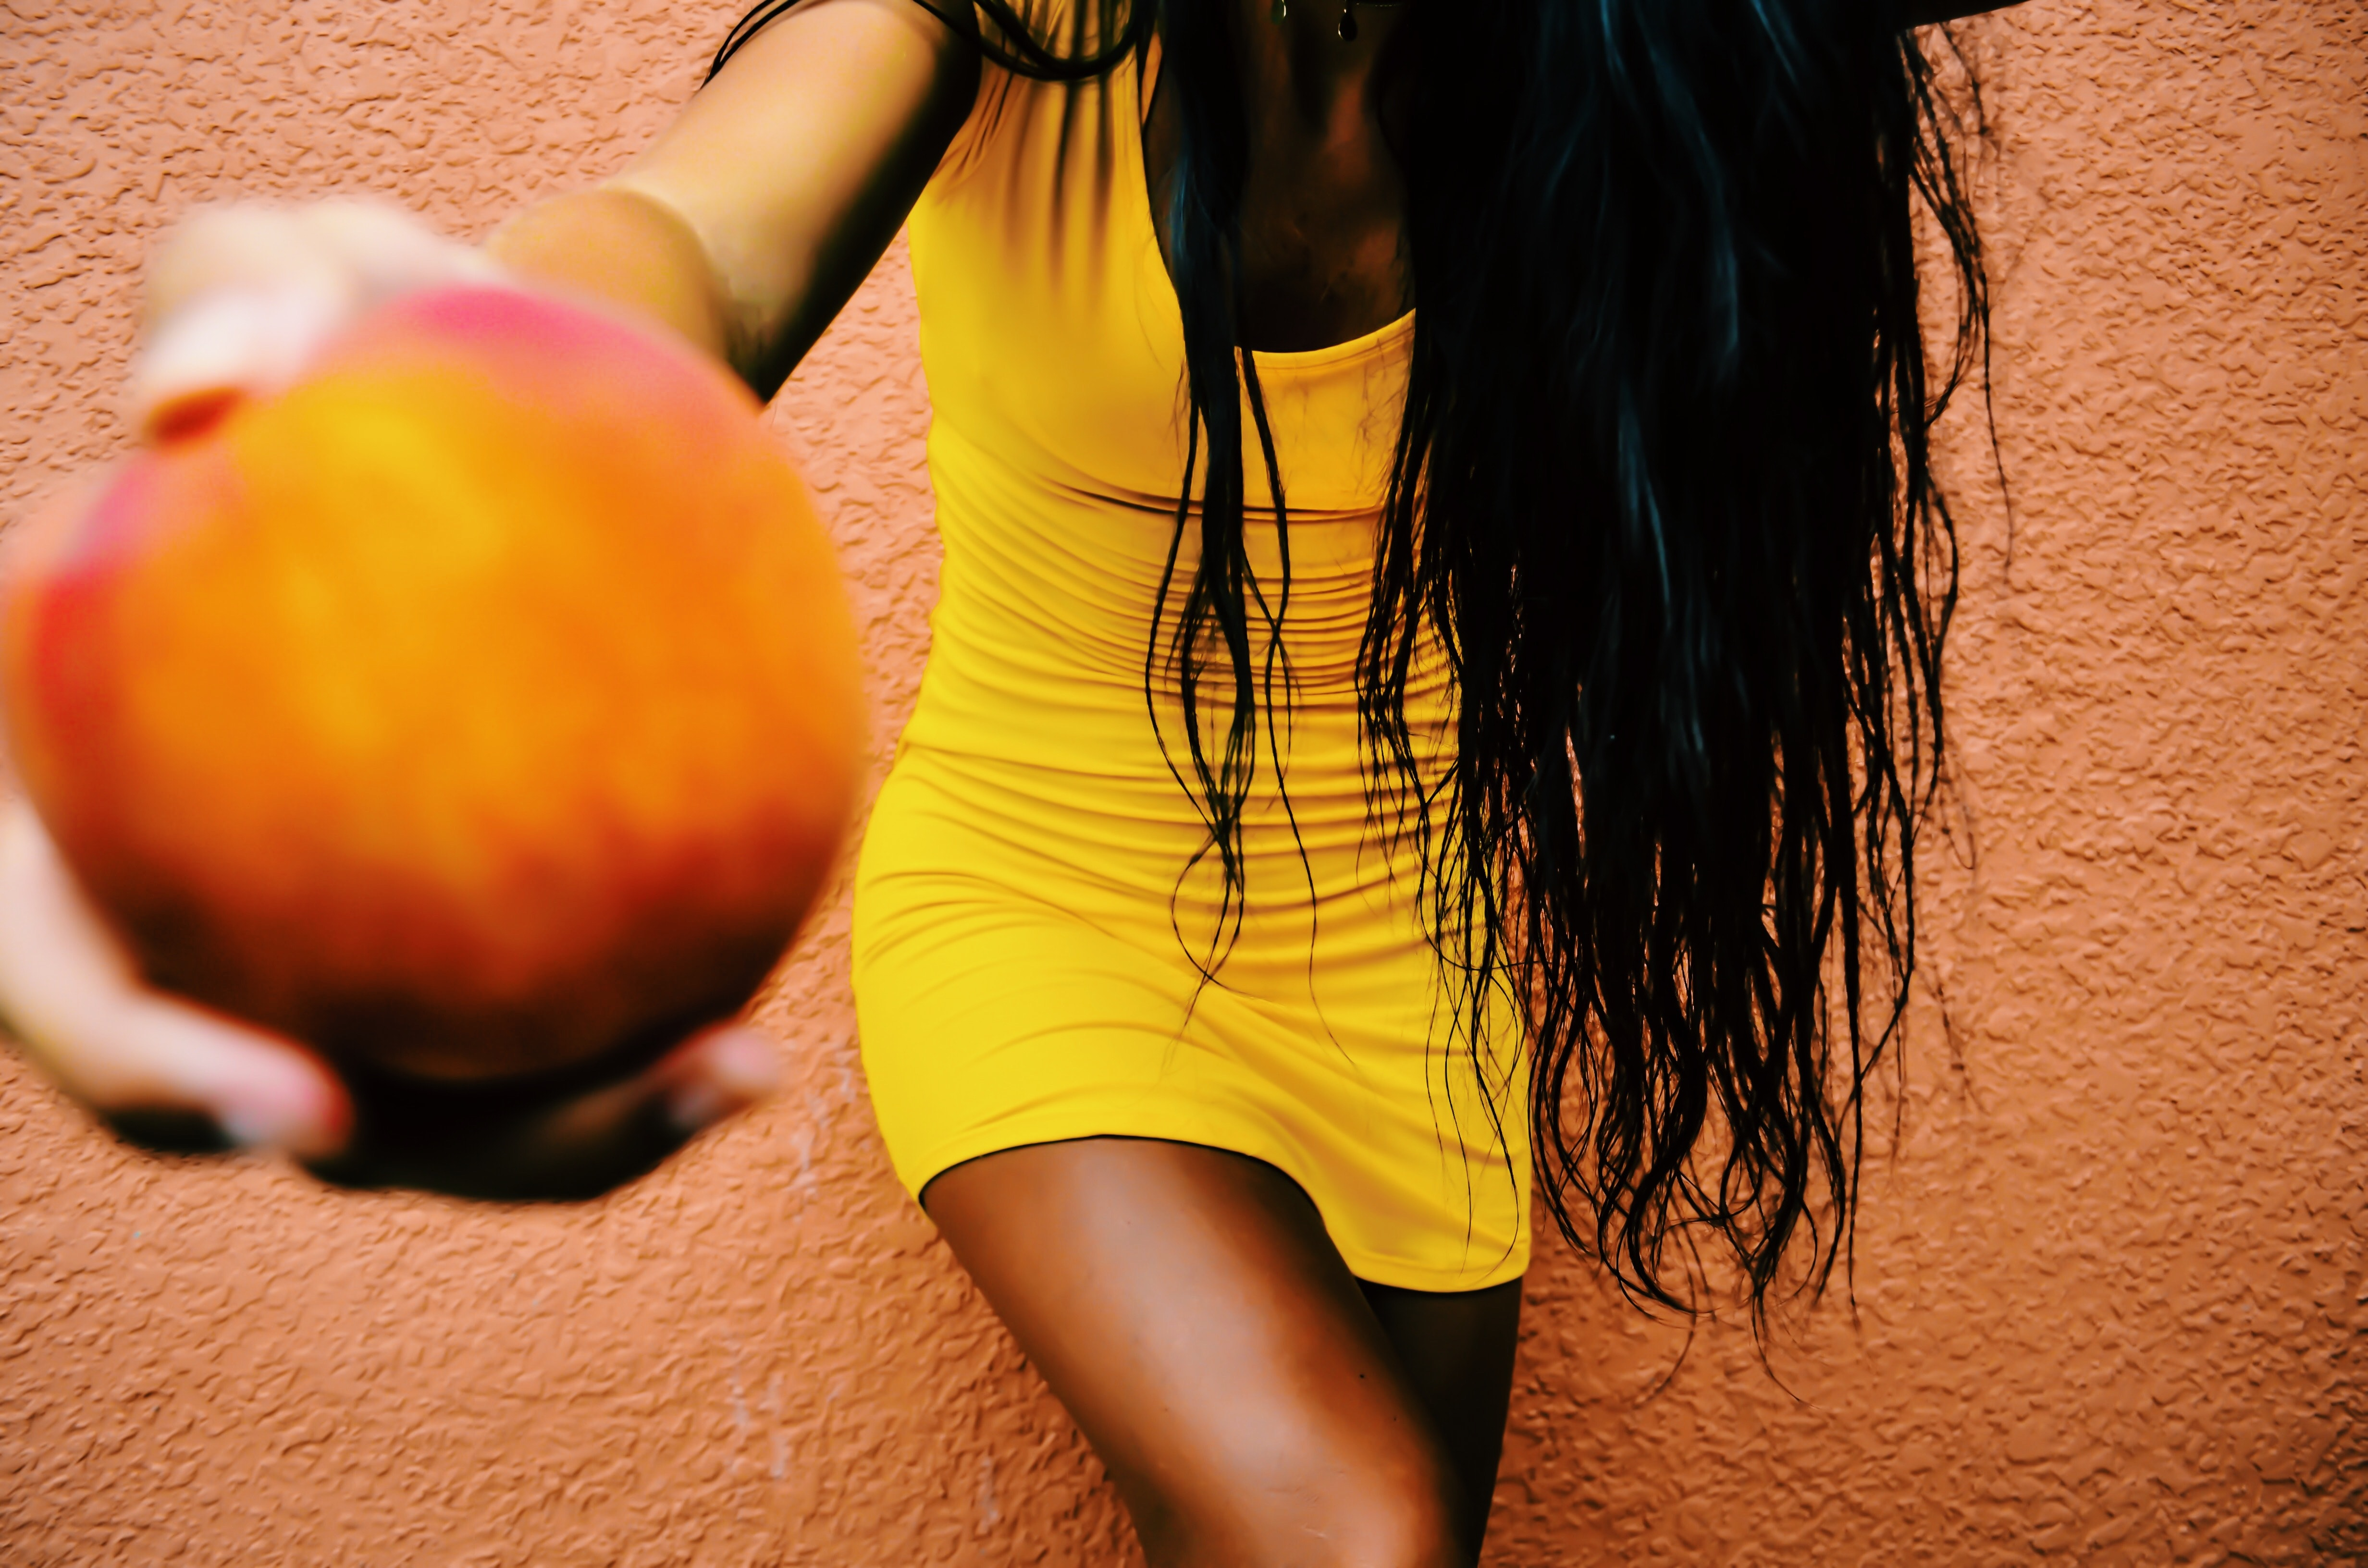 Woman Holding Round Fruit While Leaning on Orange Wall, Pose, Young, Yellow, Woman, HQ Photo